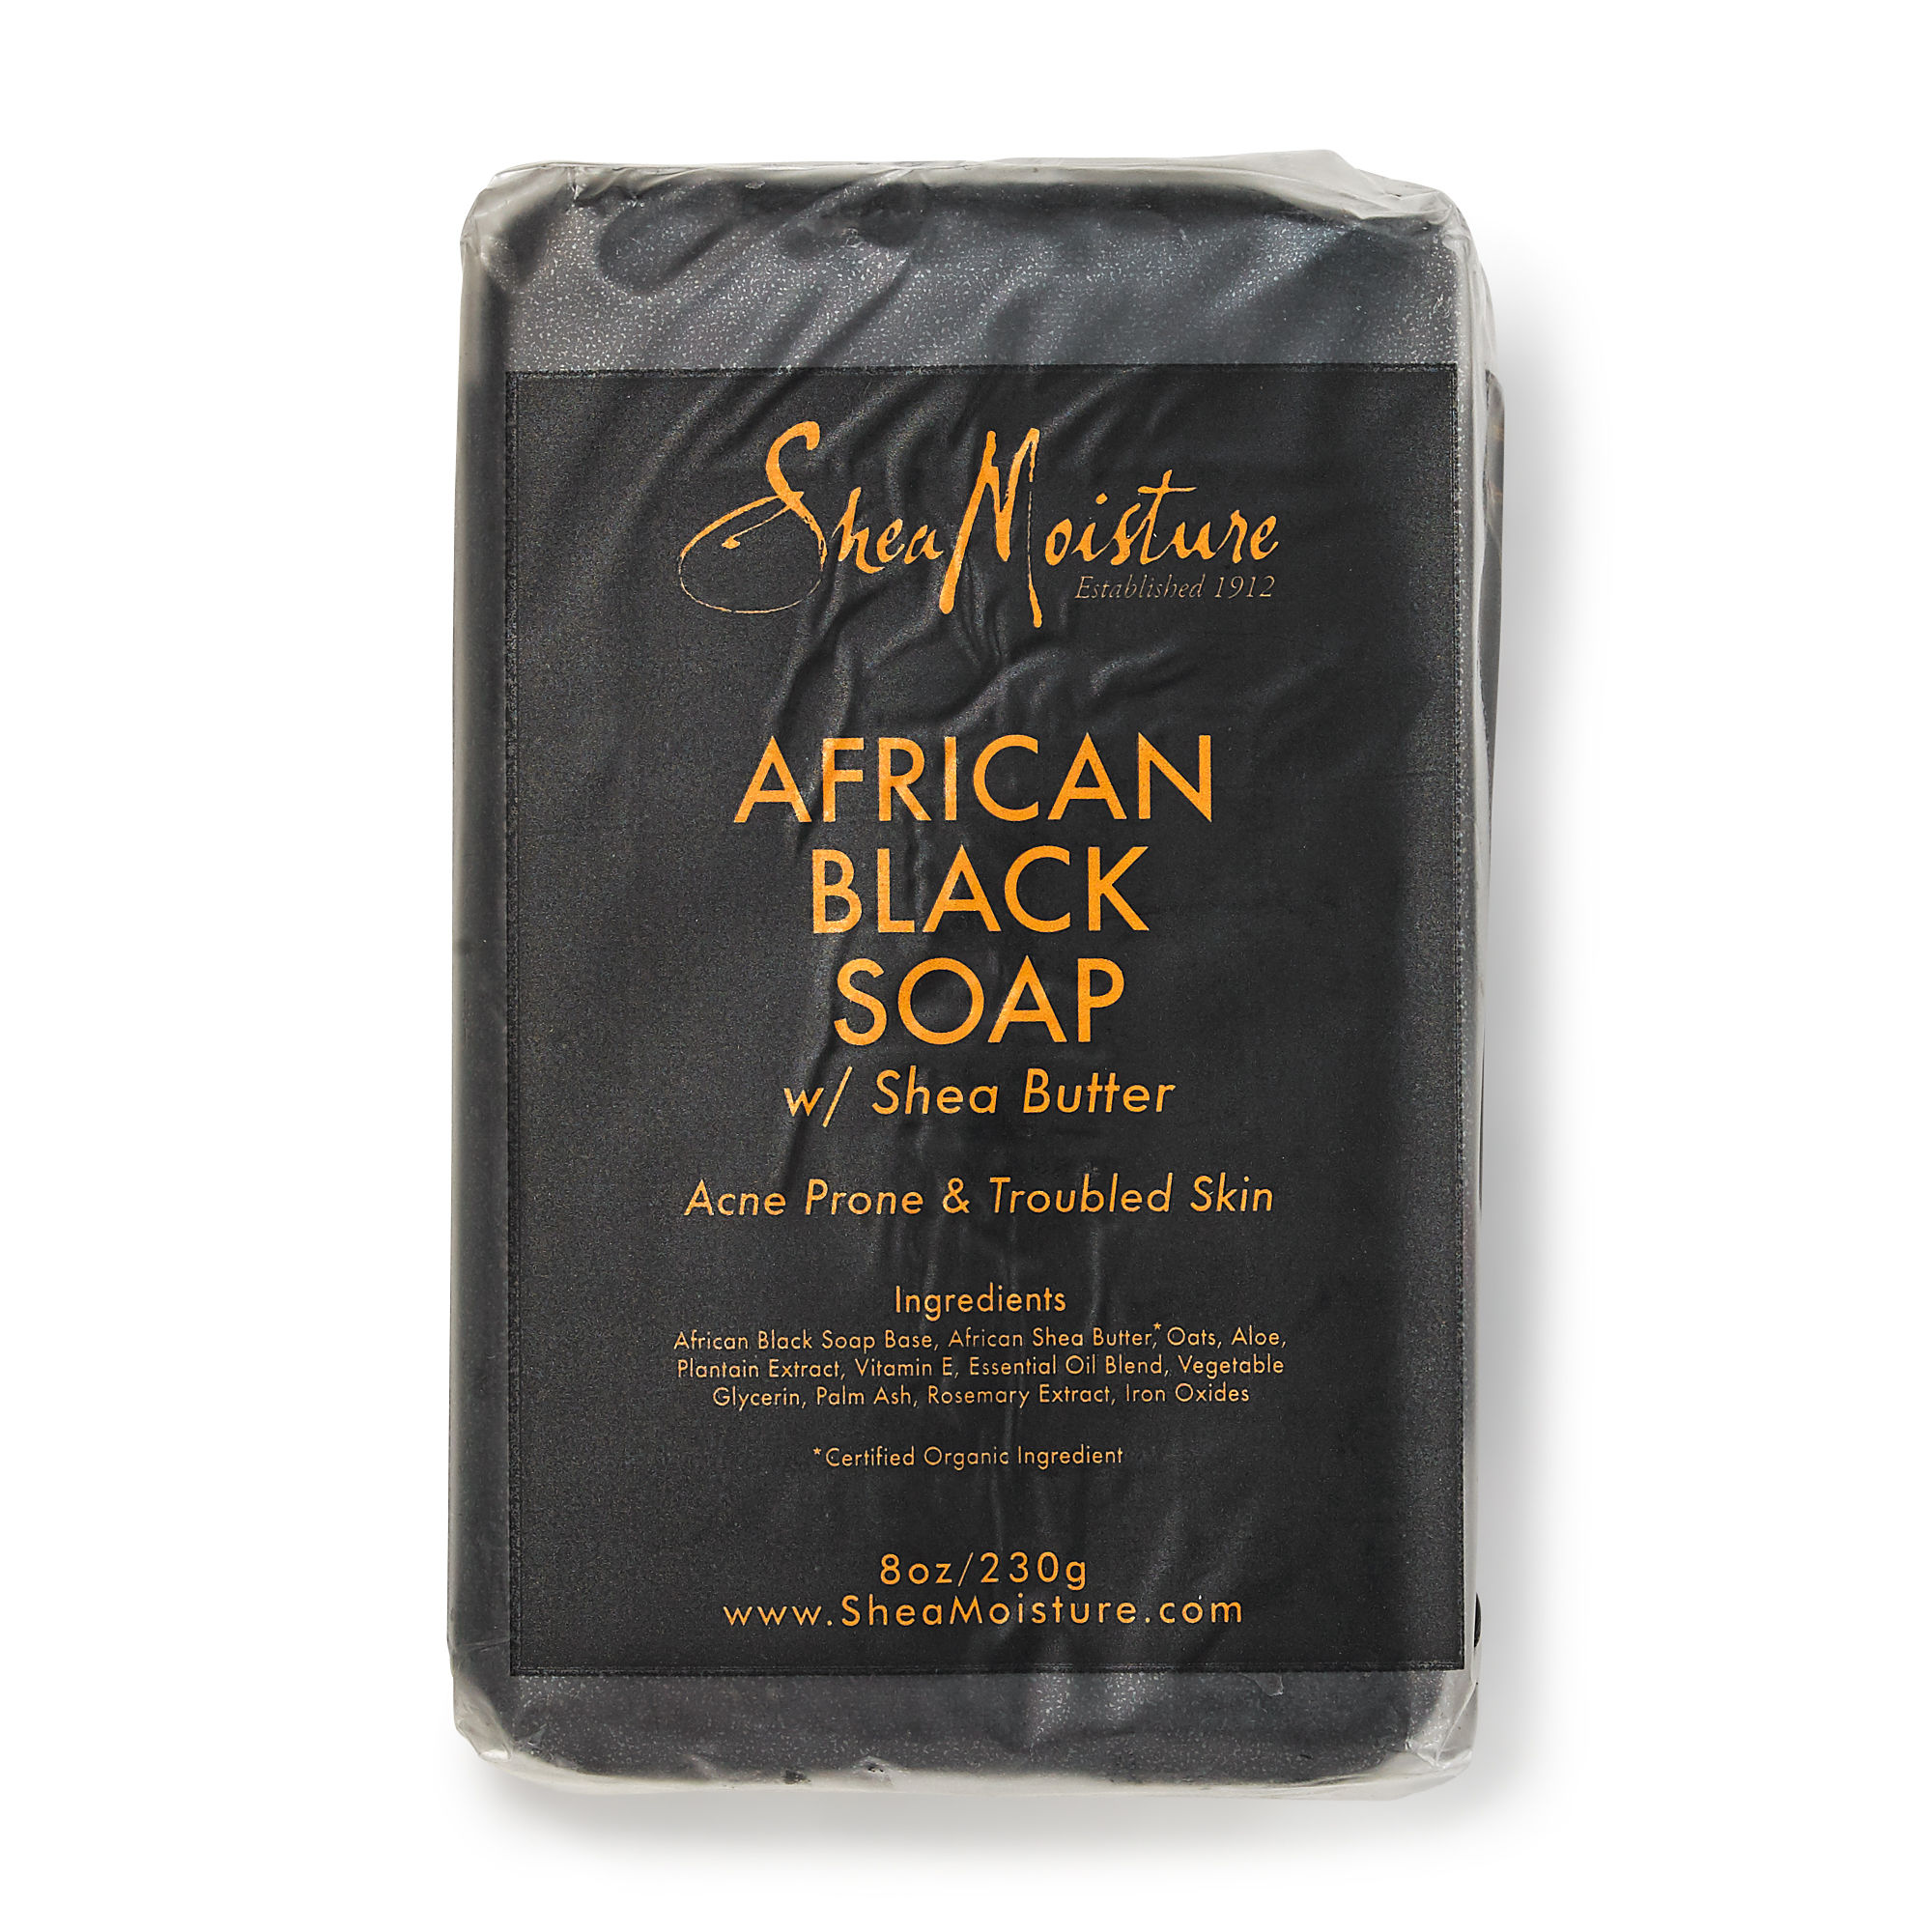 GNC SHEA MOISTURE AFRICAN BLACK SOAP ACNE PRONE FACE & BODY BAR 乳木果非洲黑皂 (8oz)